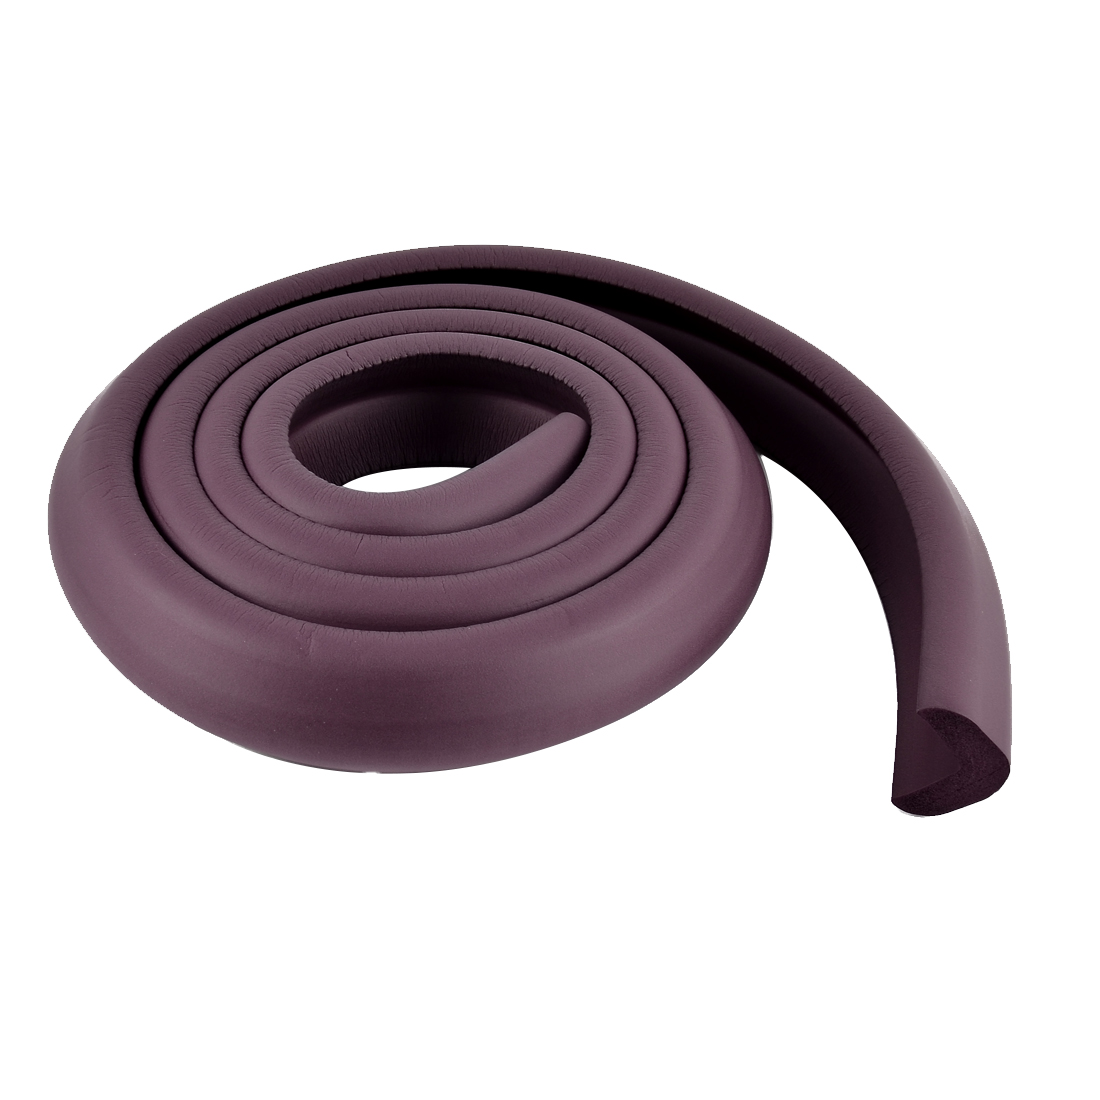 Home Safety Furniture Table Corner Edge Guard Protector Bumper Cushion Purple